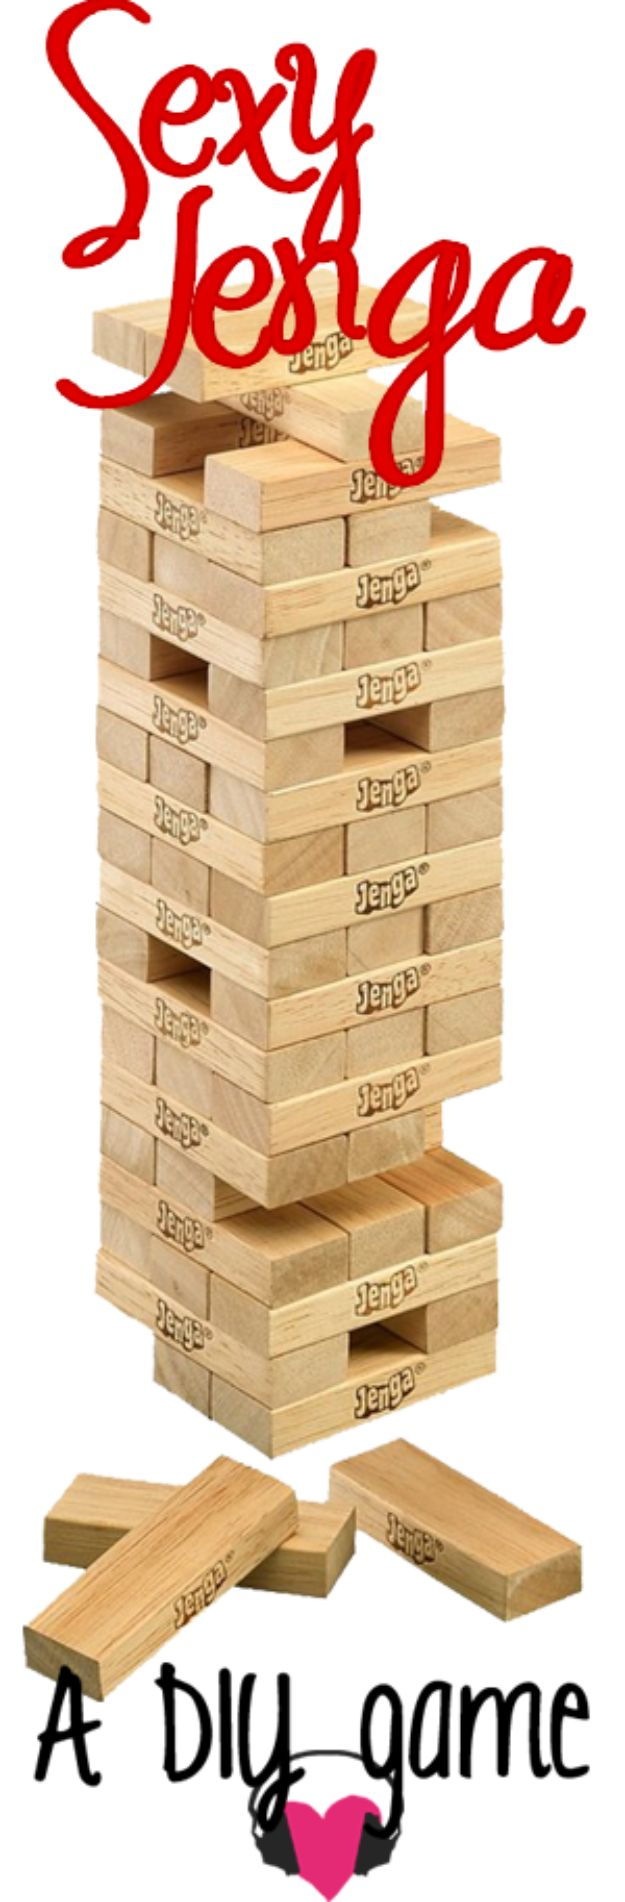 Cool Games To Make for Valentines Day - Sexy Jenga - Cheap and Easy Crafts For Valentine Parties - Ideas for Kids and Adults to Play Bingo, Matching, Free Printables and Cute Game Projects With Hearts, Red and Pink Art Ideas - Adorable Fun for The Holiday Celebrations #valentine #valentinesday